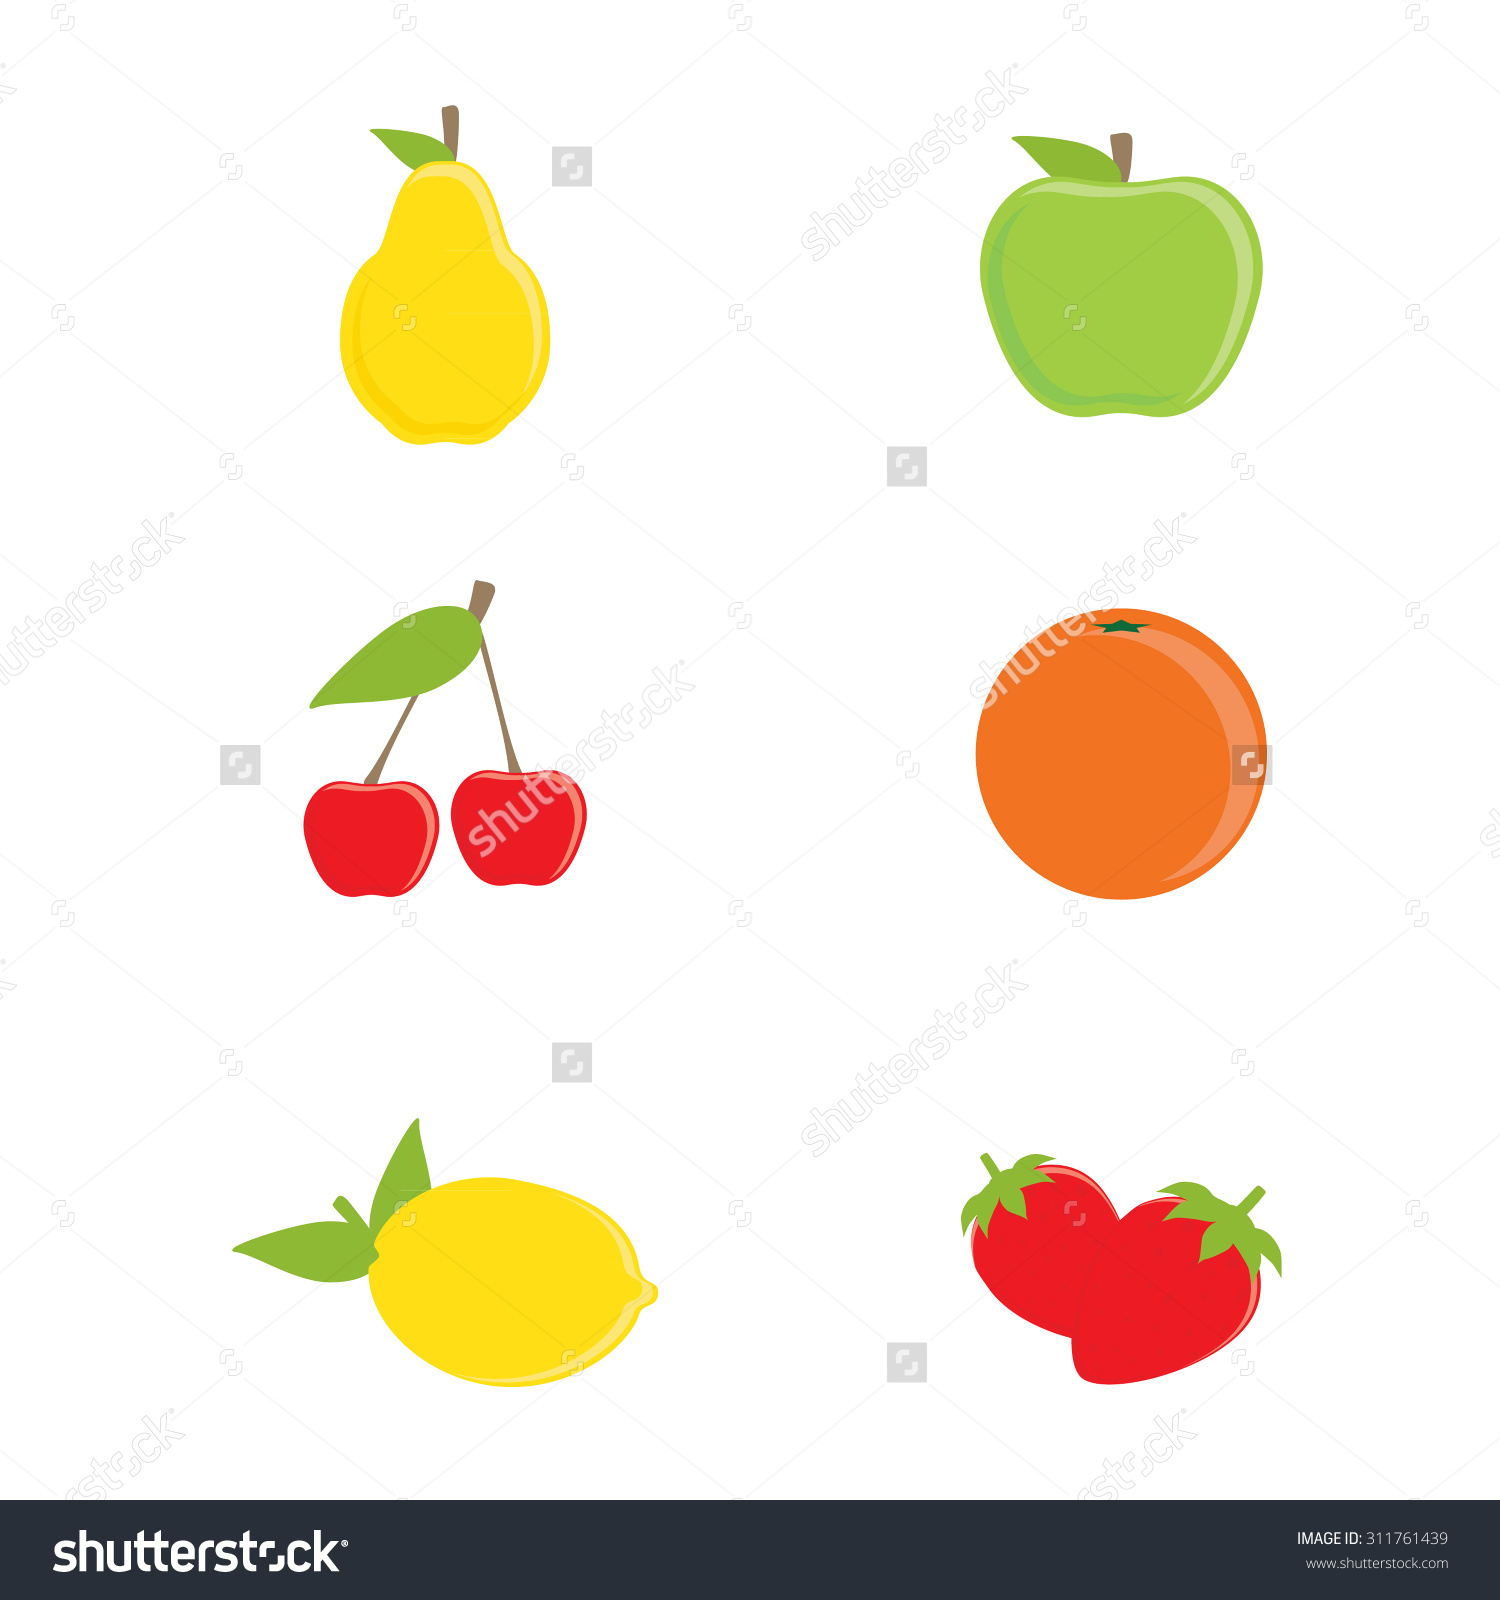 Vector Collection Of Fruit Icons. Yellow Pear, Green Apple, Orange.